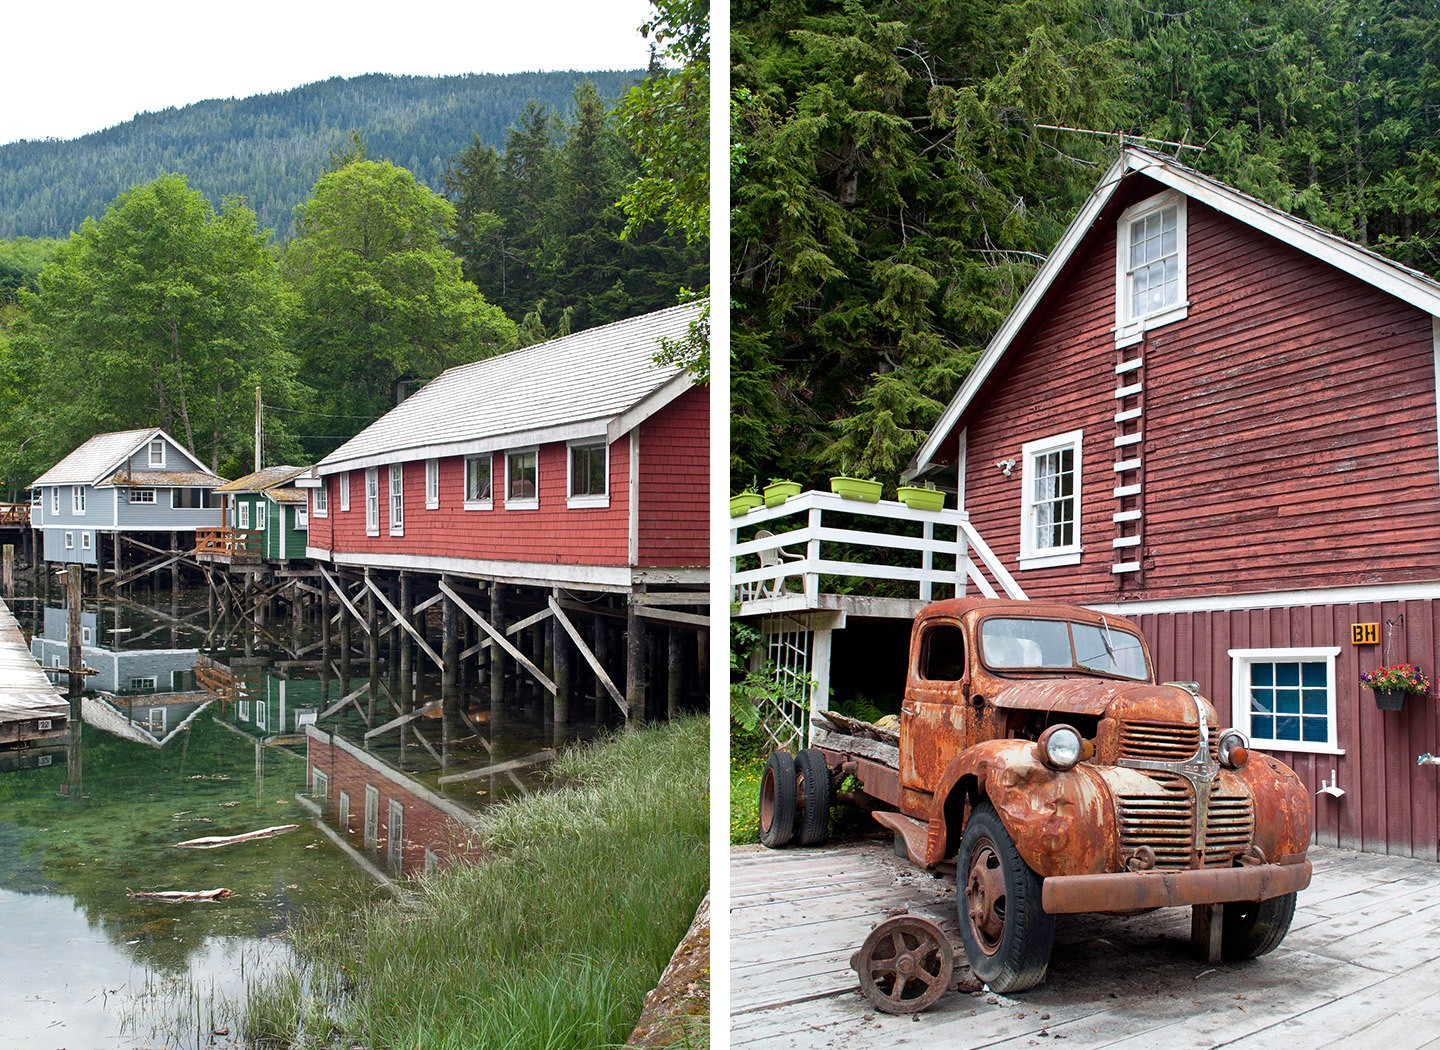 Wooden buildings and boardwalks at Telegraph Cove